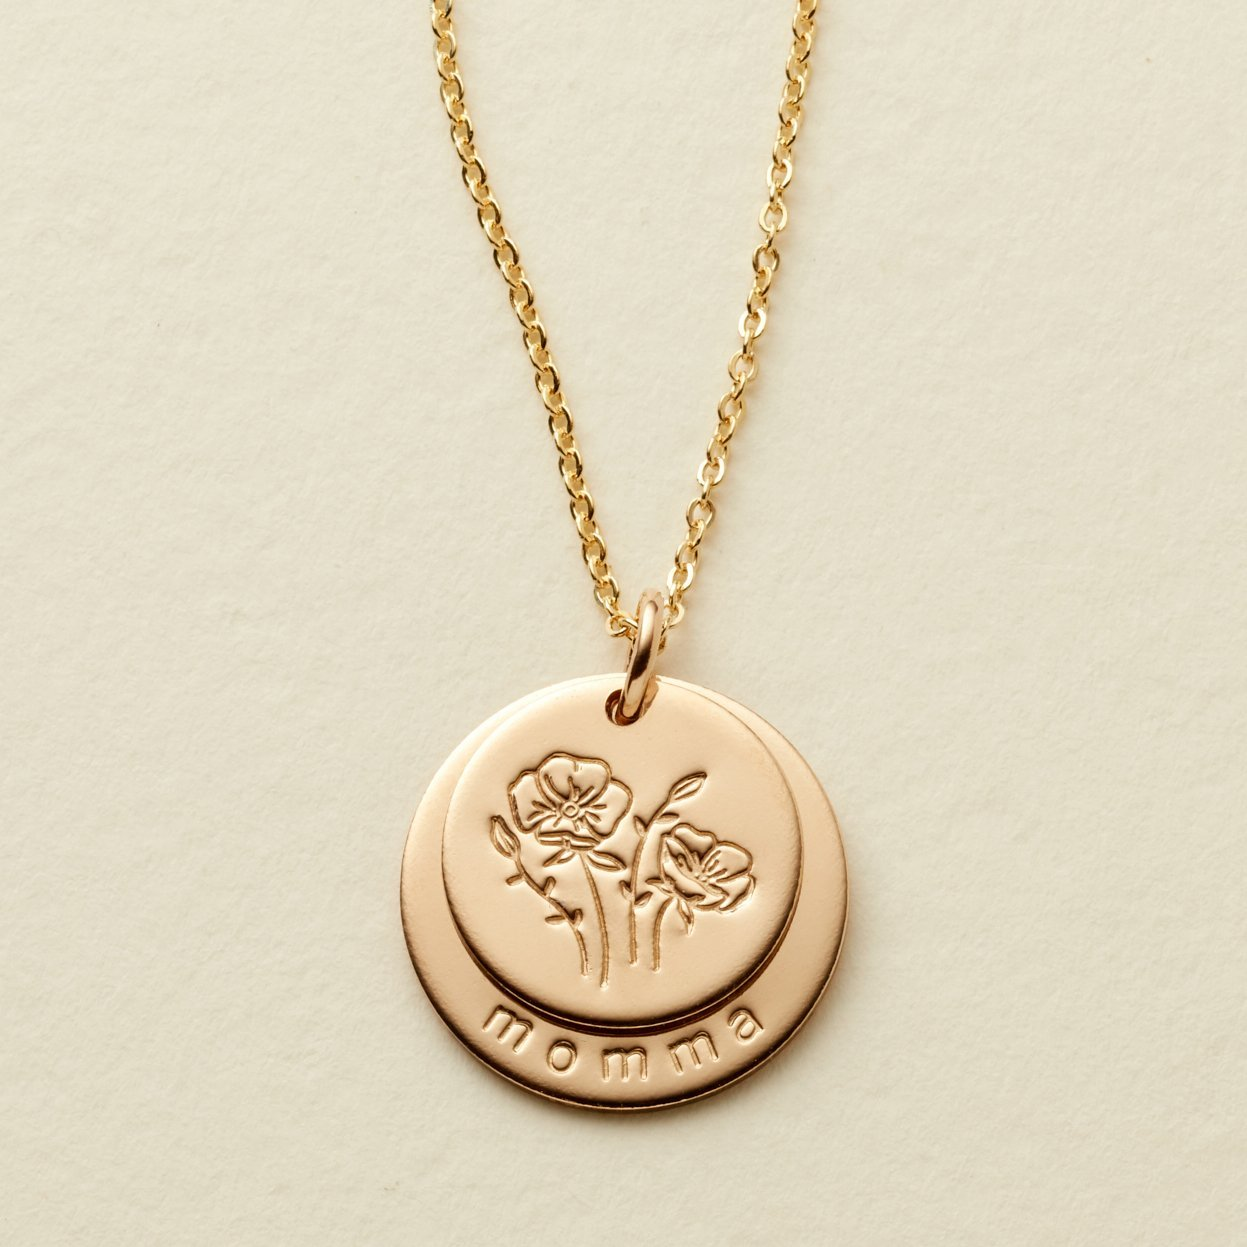 Gold Filled Nora Disc Necklace - Momma and August Flowers - MBM